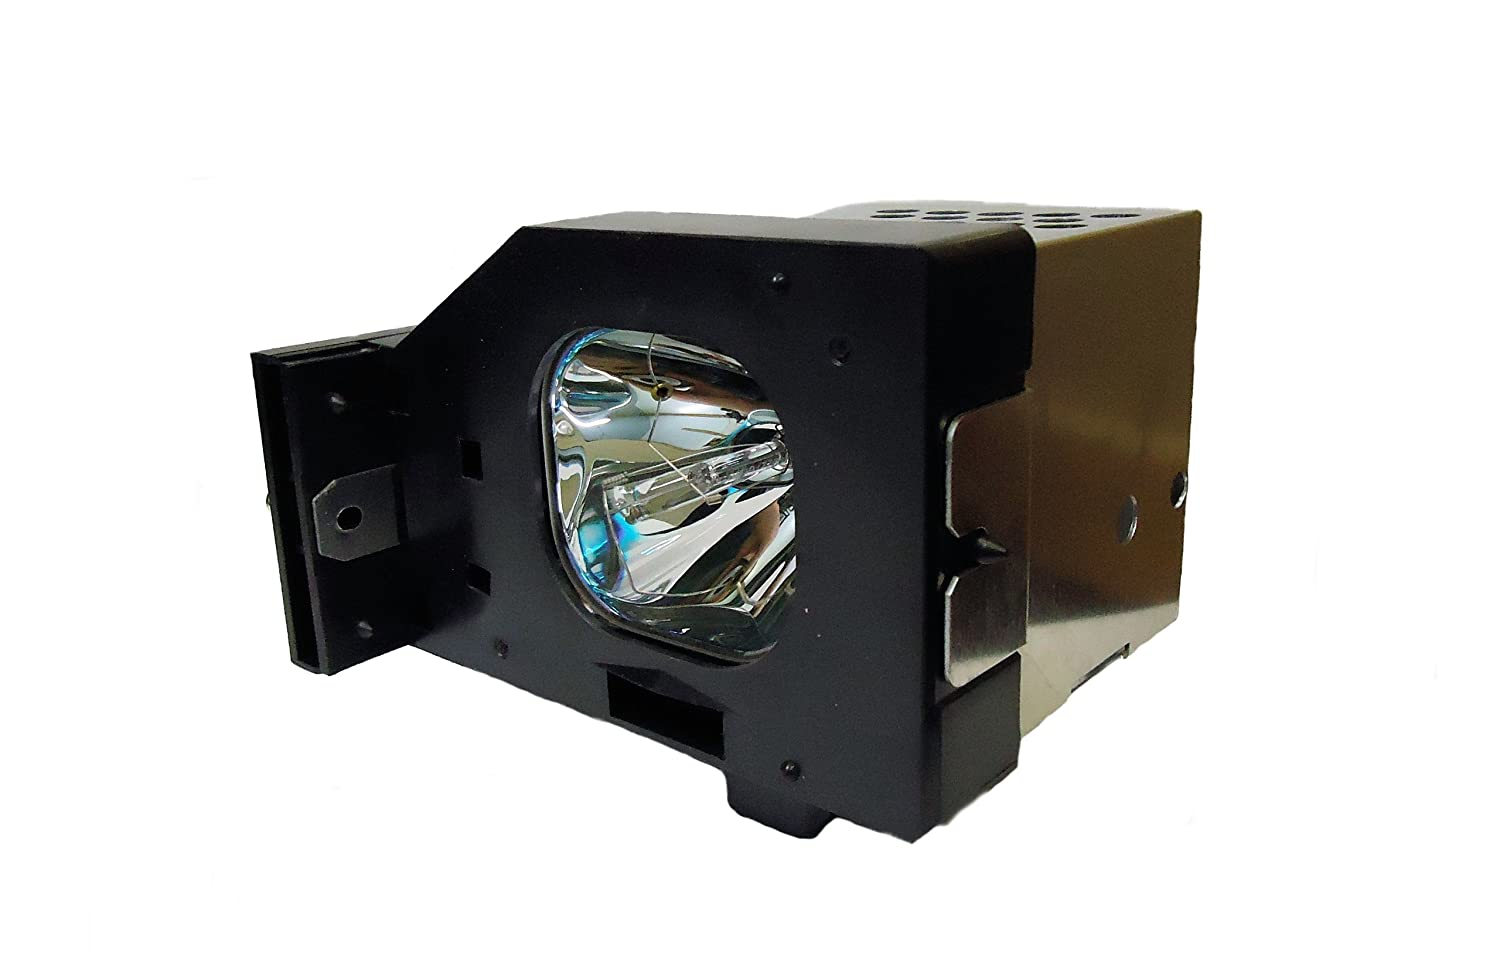 Panasonic PT61LCX35 Lamp with Housing TY-LA1000 projector lamp 60 j1331 001 with housing for sl700x sl703s sl703x sl705s sl705x sl700 sl703 sl705 sl710x sl710s sl710